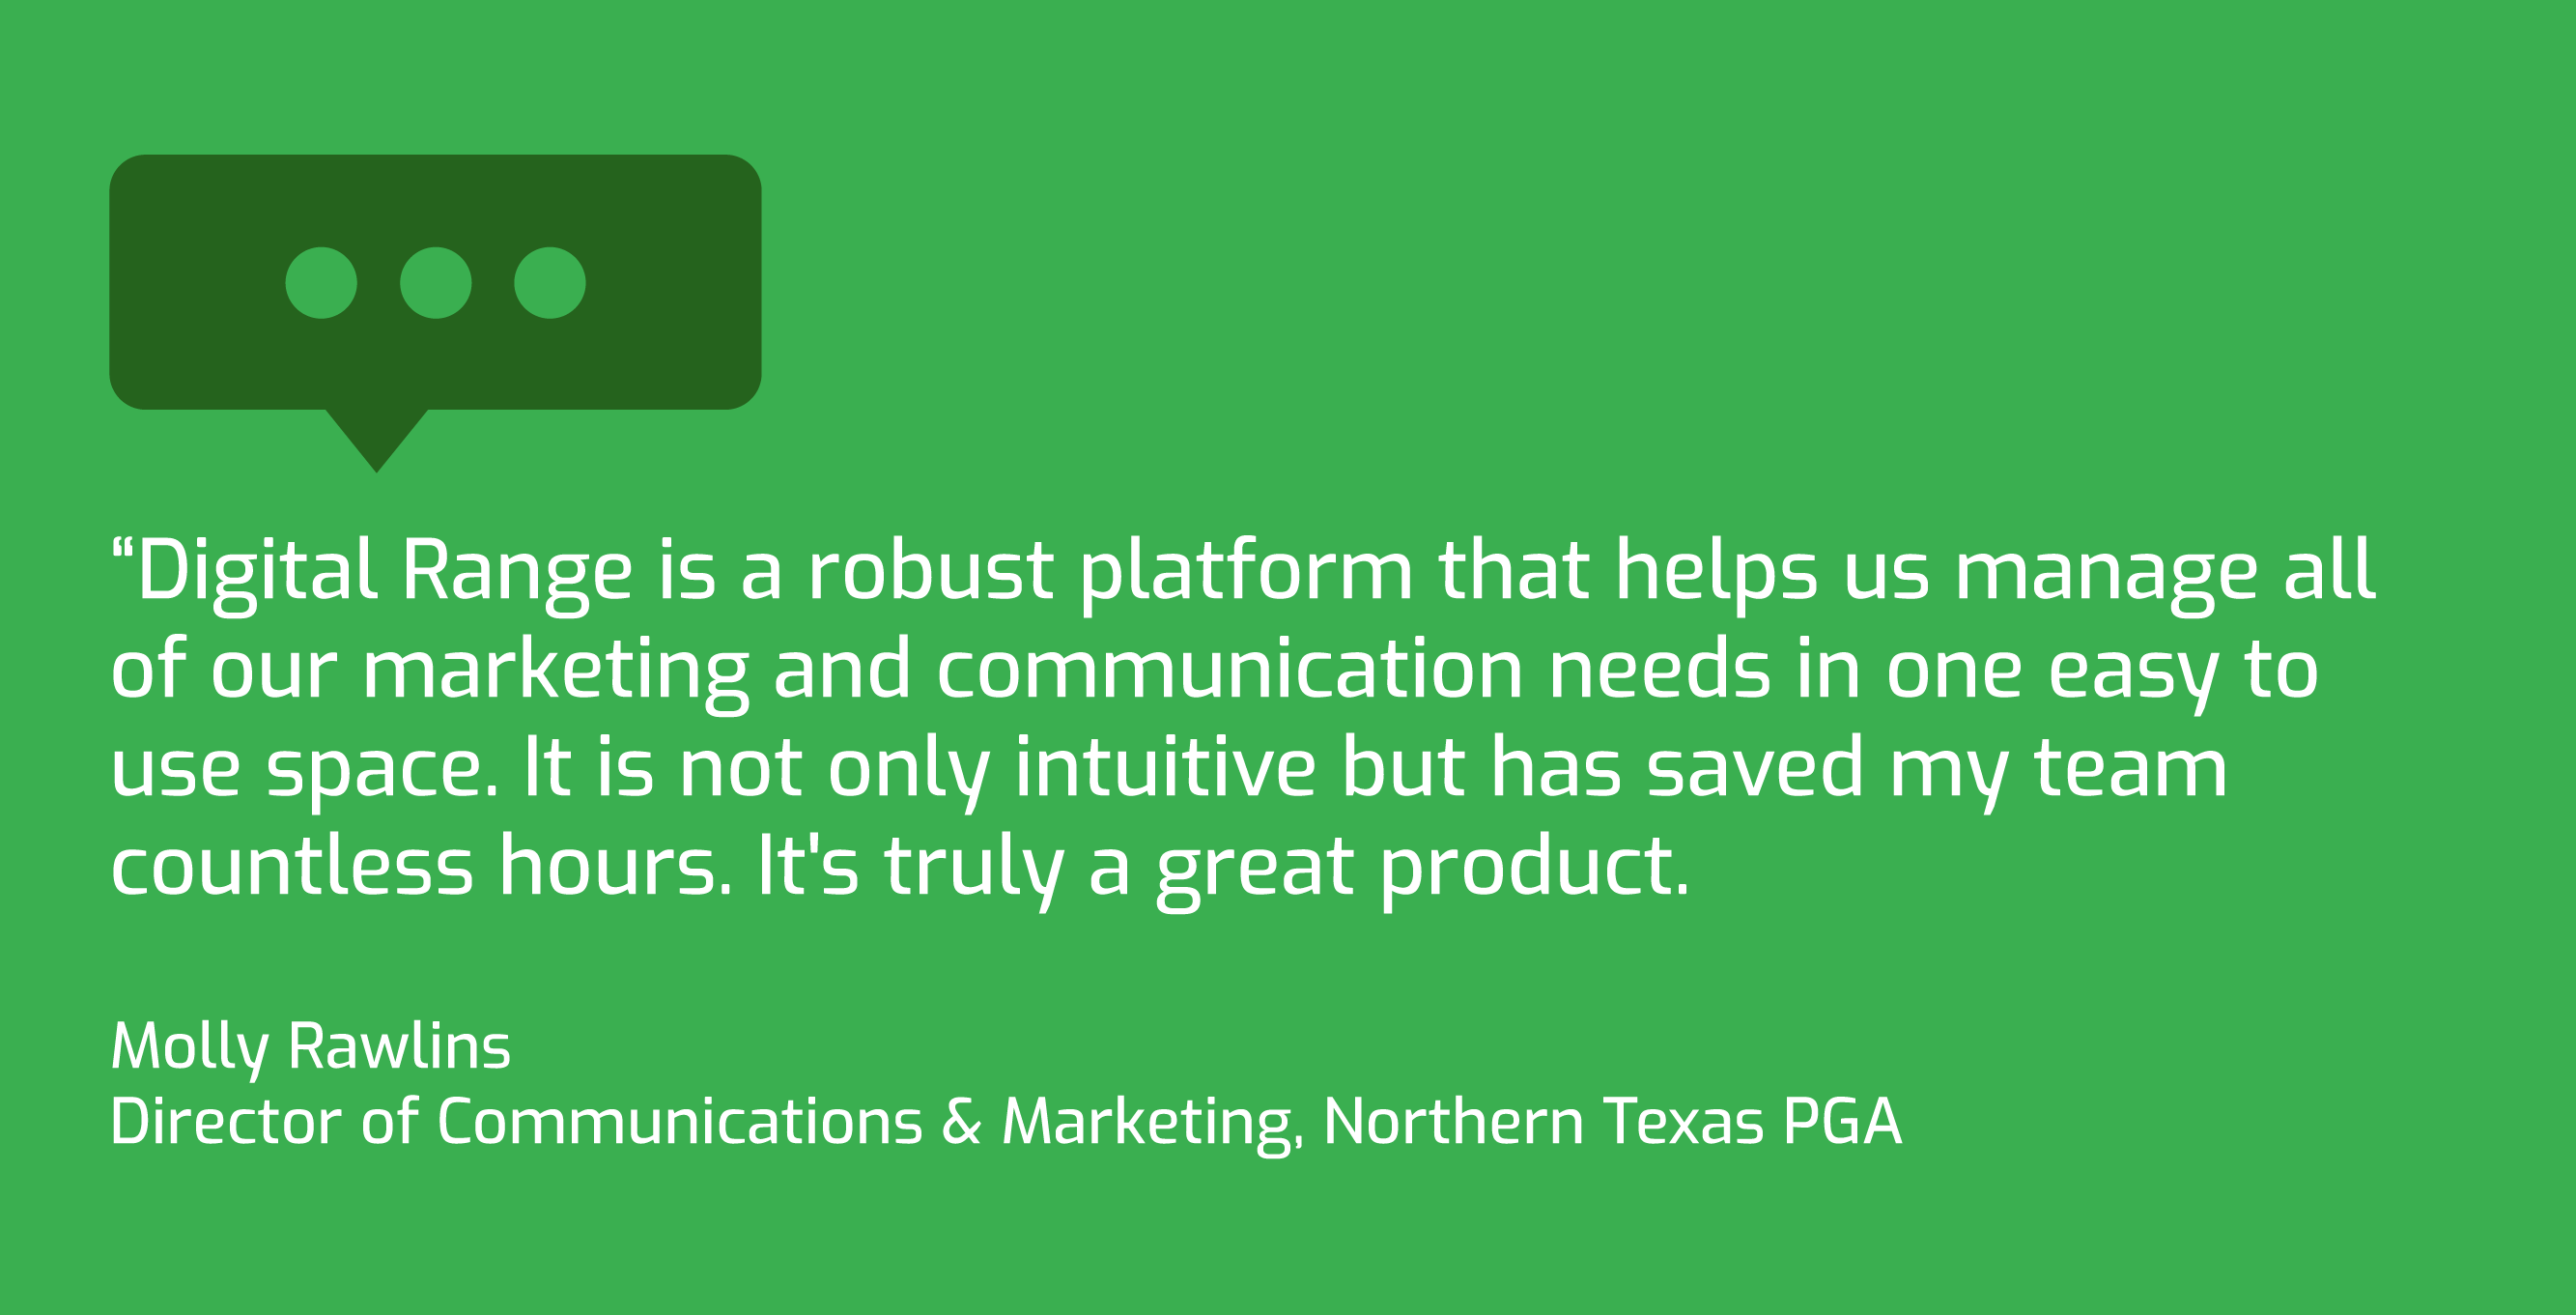 Long Drive Agency, NTPGA Partnership Quote Molly Rawlins